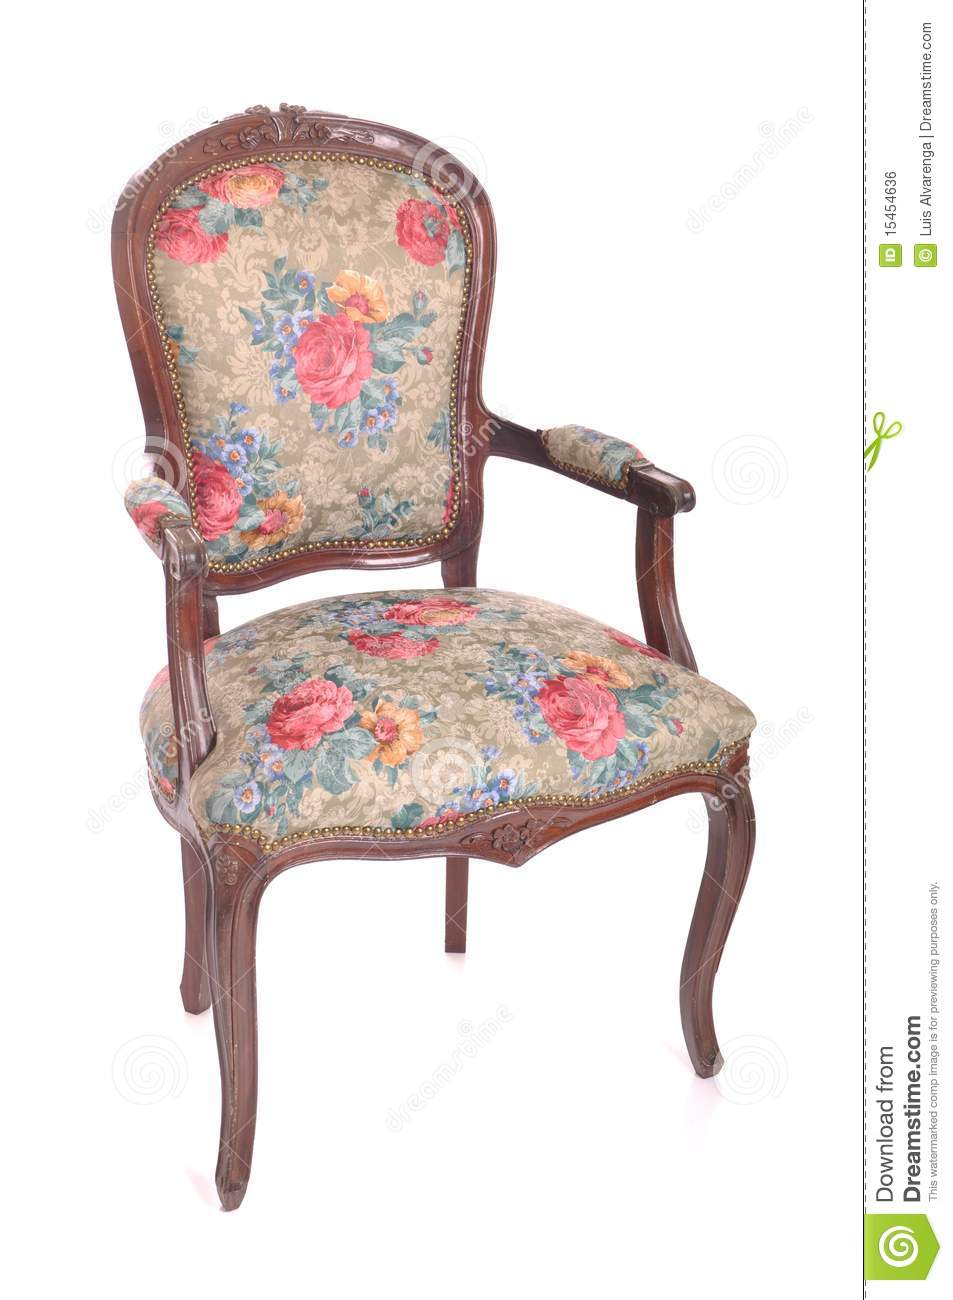 Antique chair royalty free stock image image 15454636 - Chair antieke ...